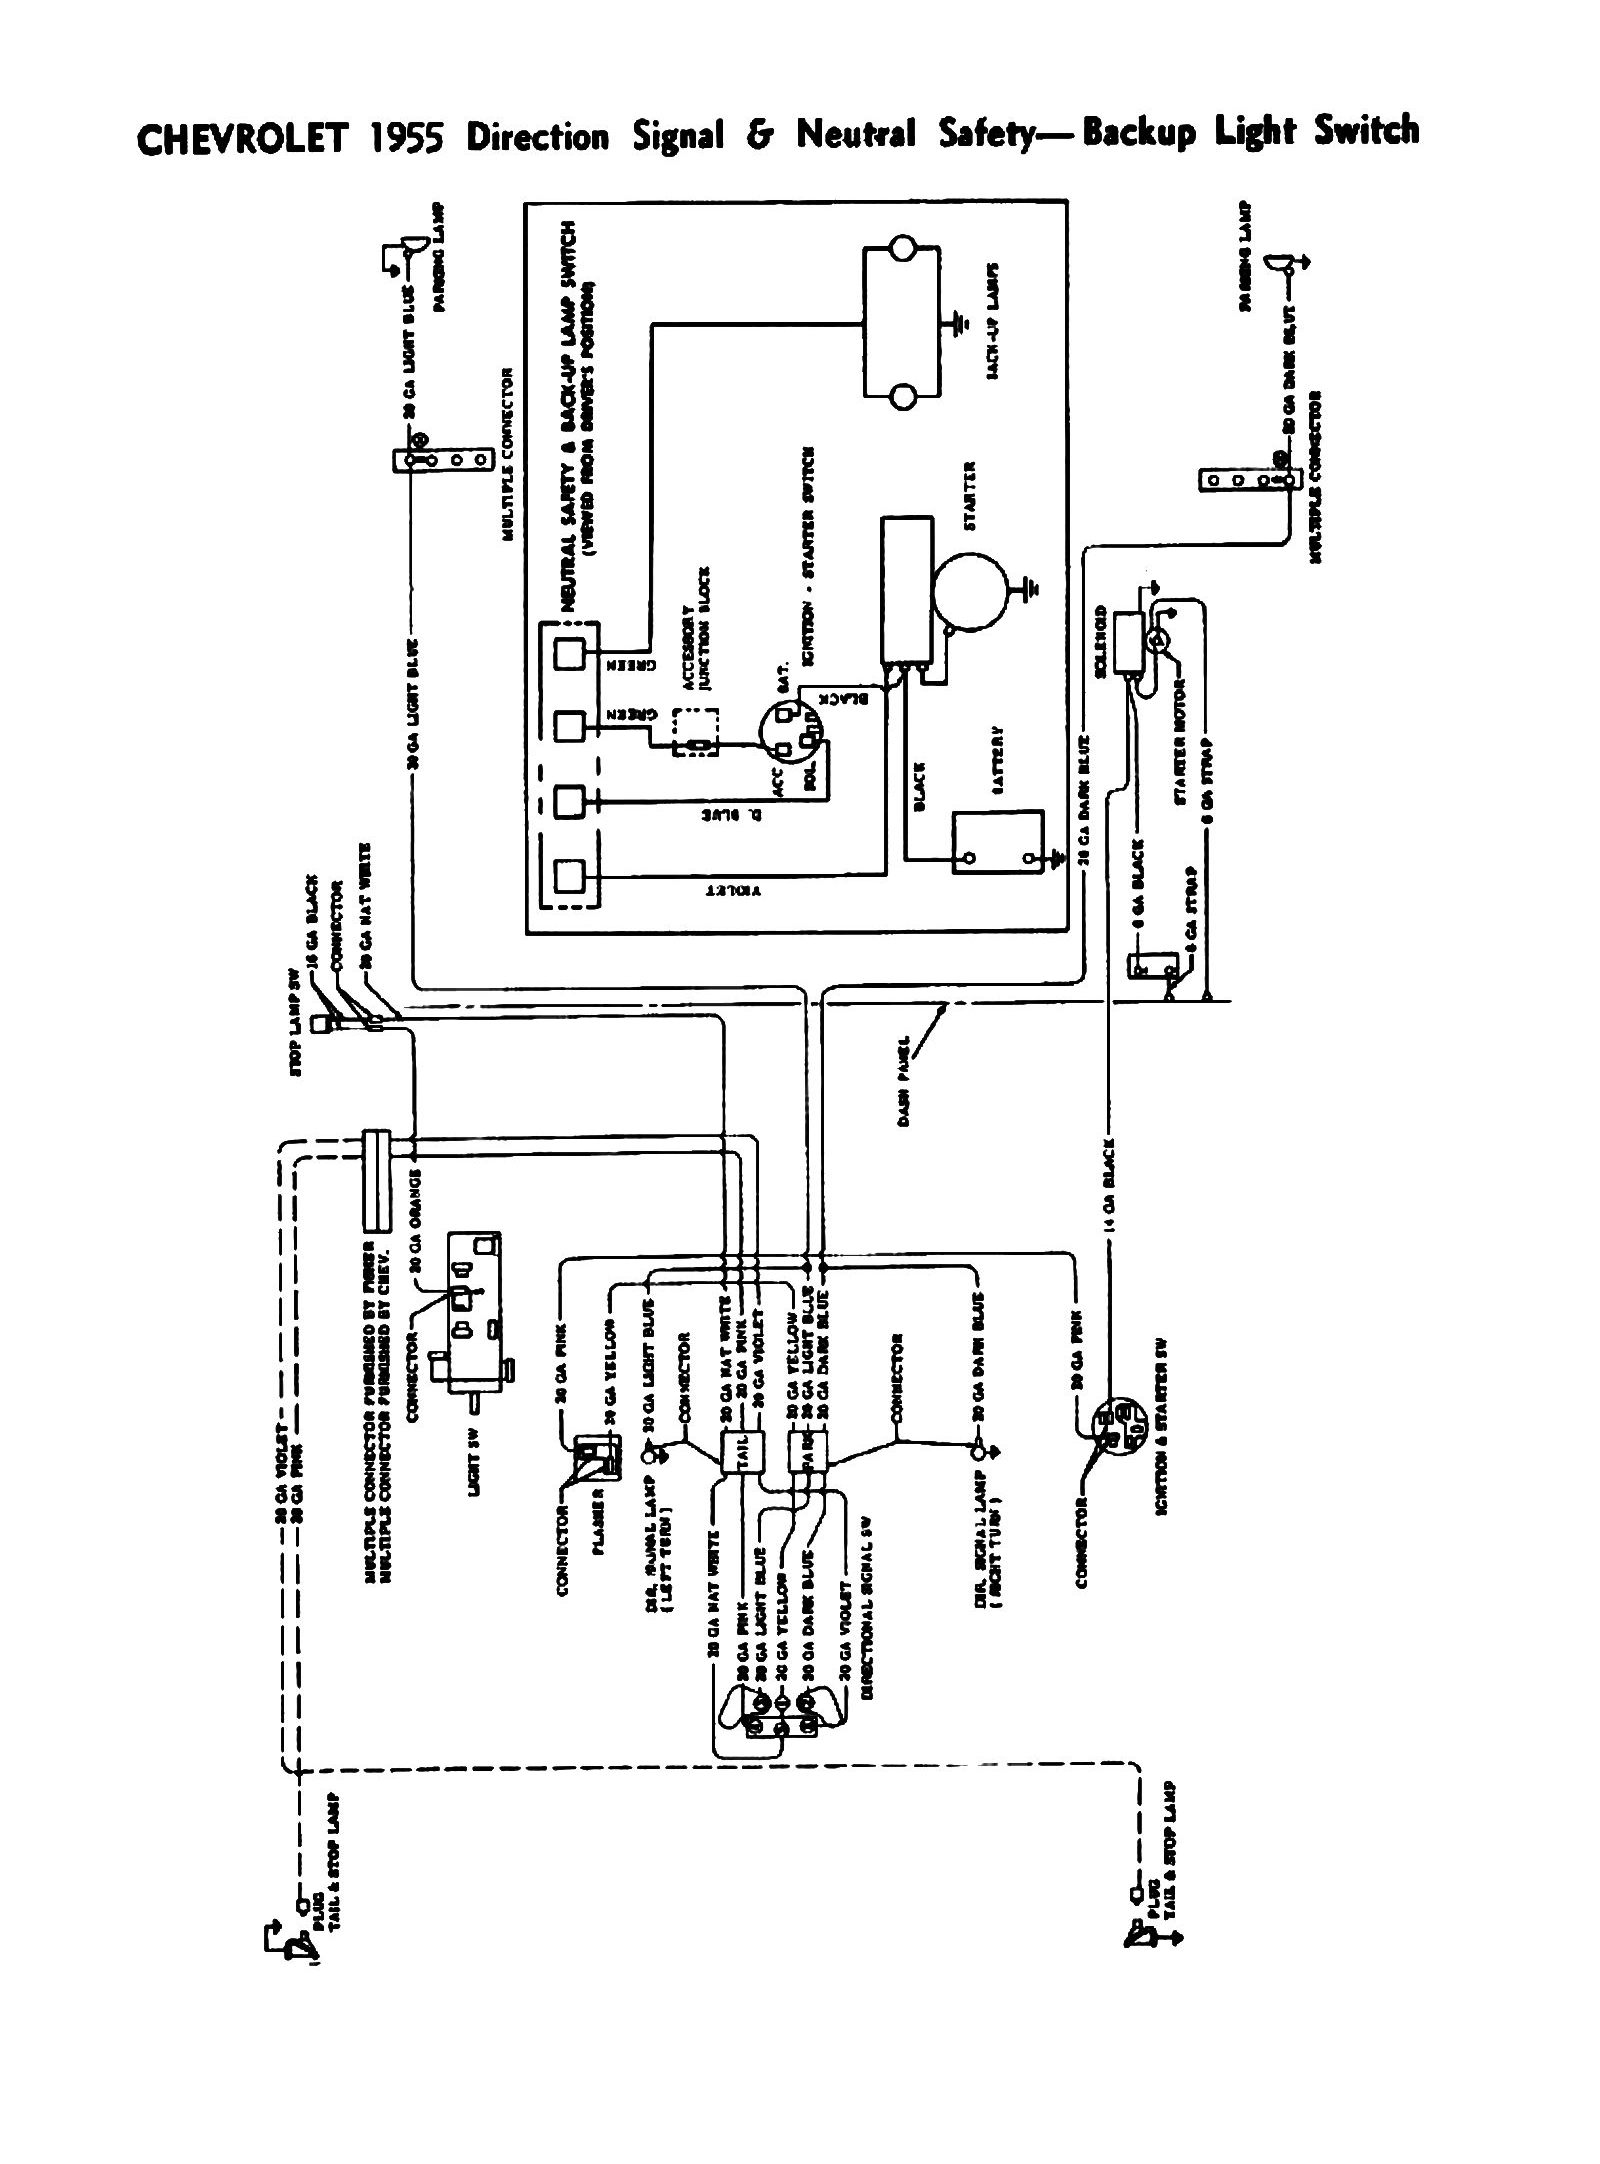 55signal chevy wiring diagrams 1957 chevy truck turn signal wiring diagram at pacquiaovsvargaslive.co